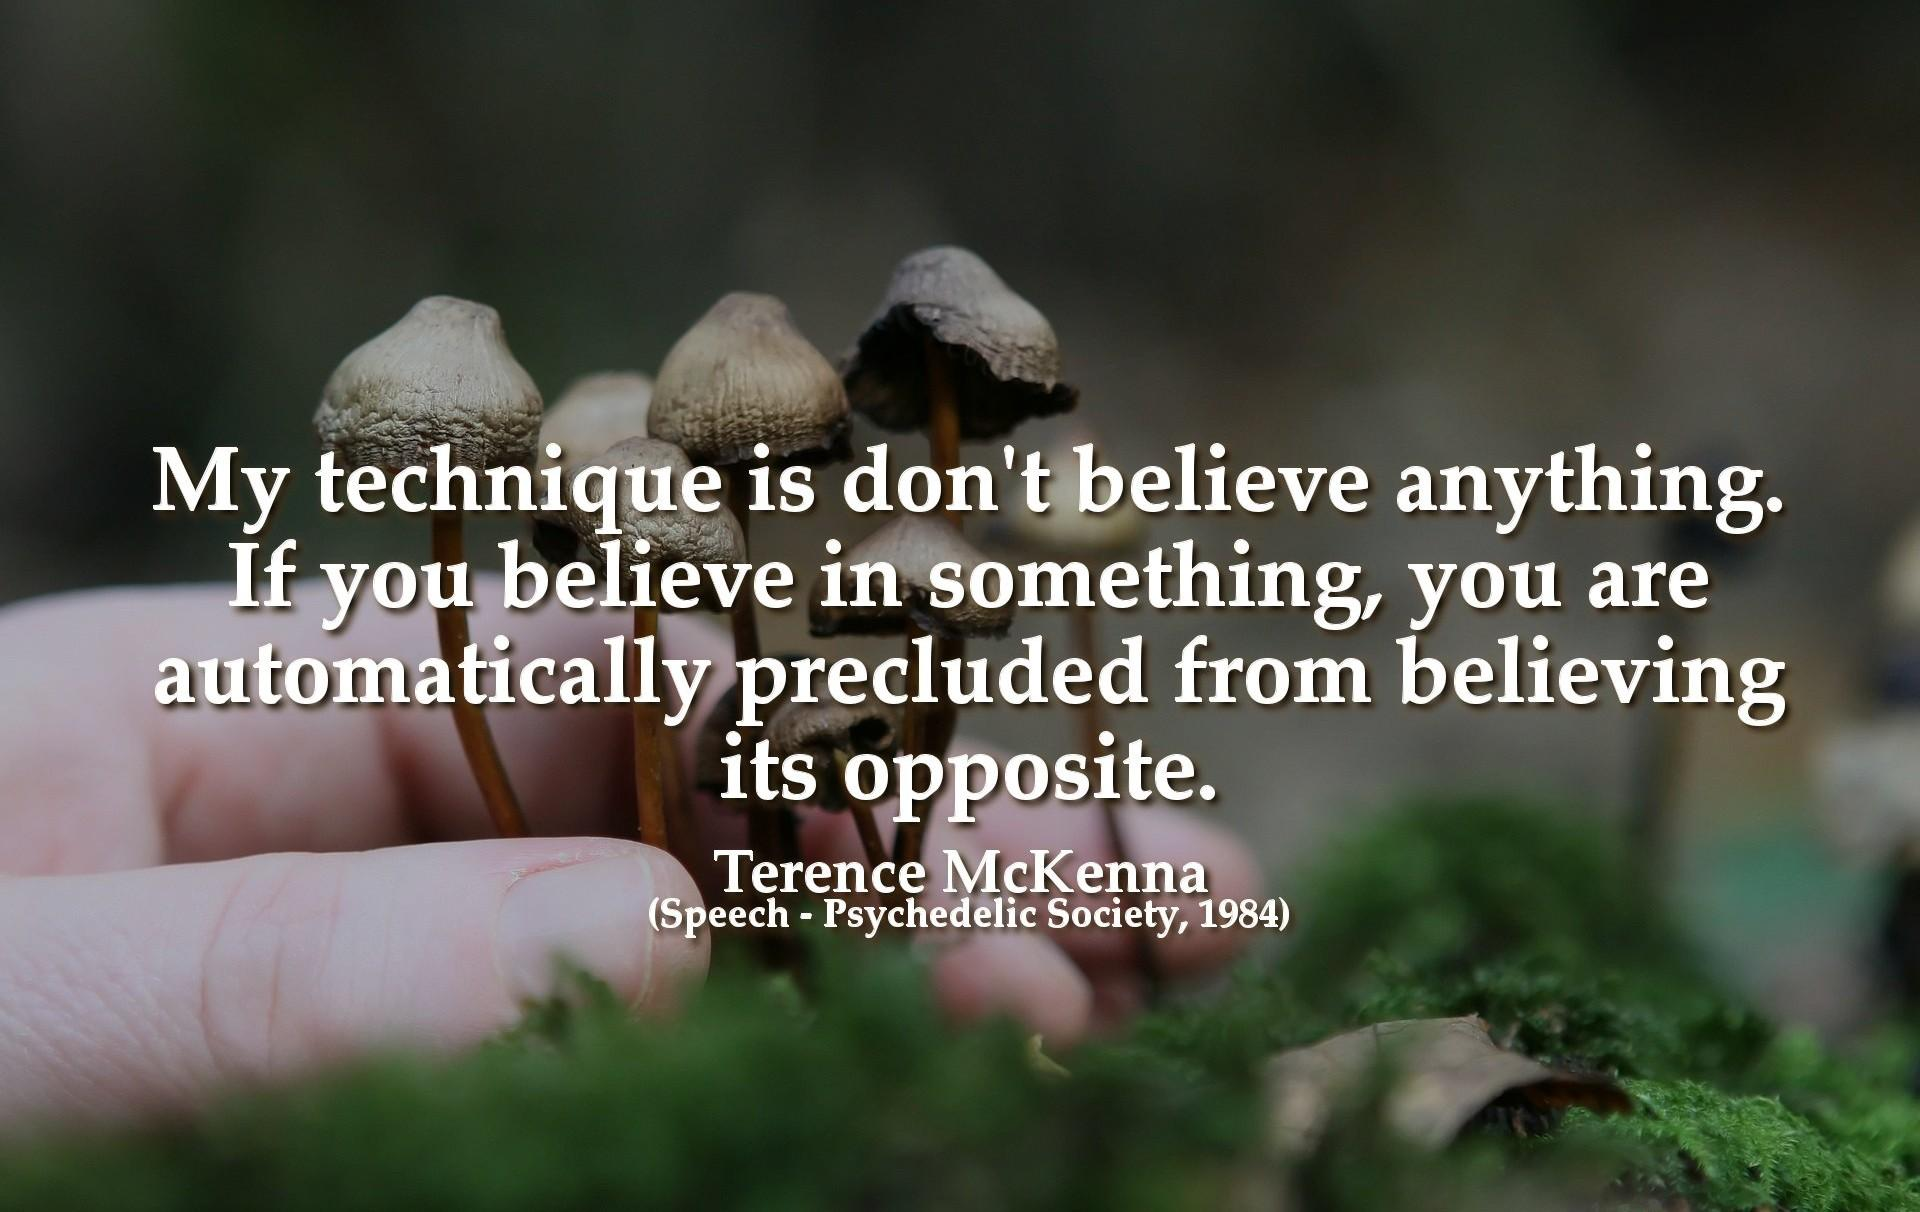 """My technique is don't believe anything. If you believe in something you are automatically precluded from believing it's opposite."" – Terence McKenna [1920 X 1280]"